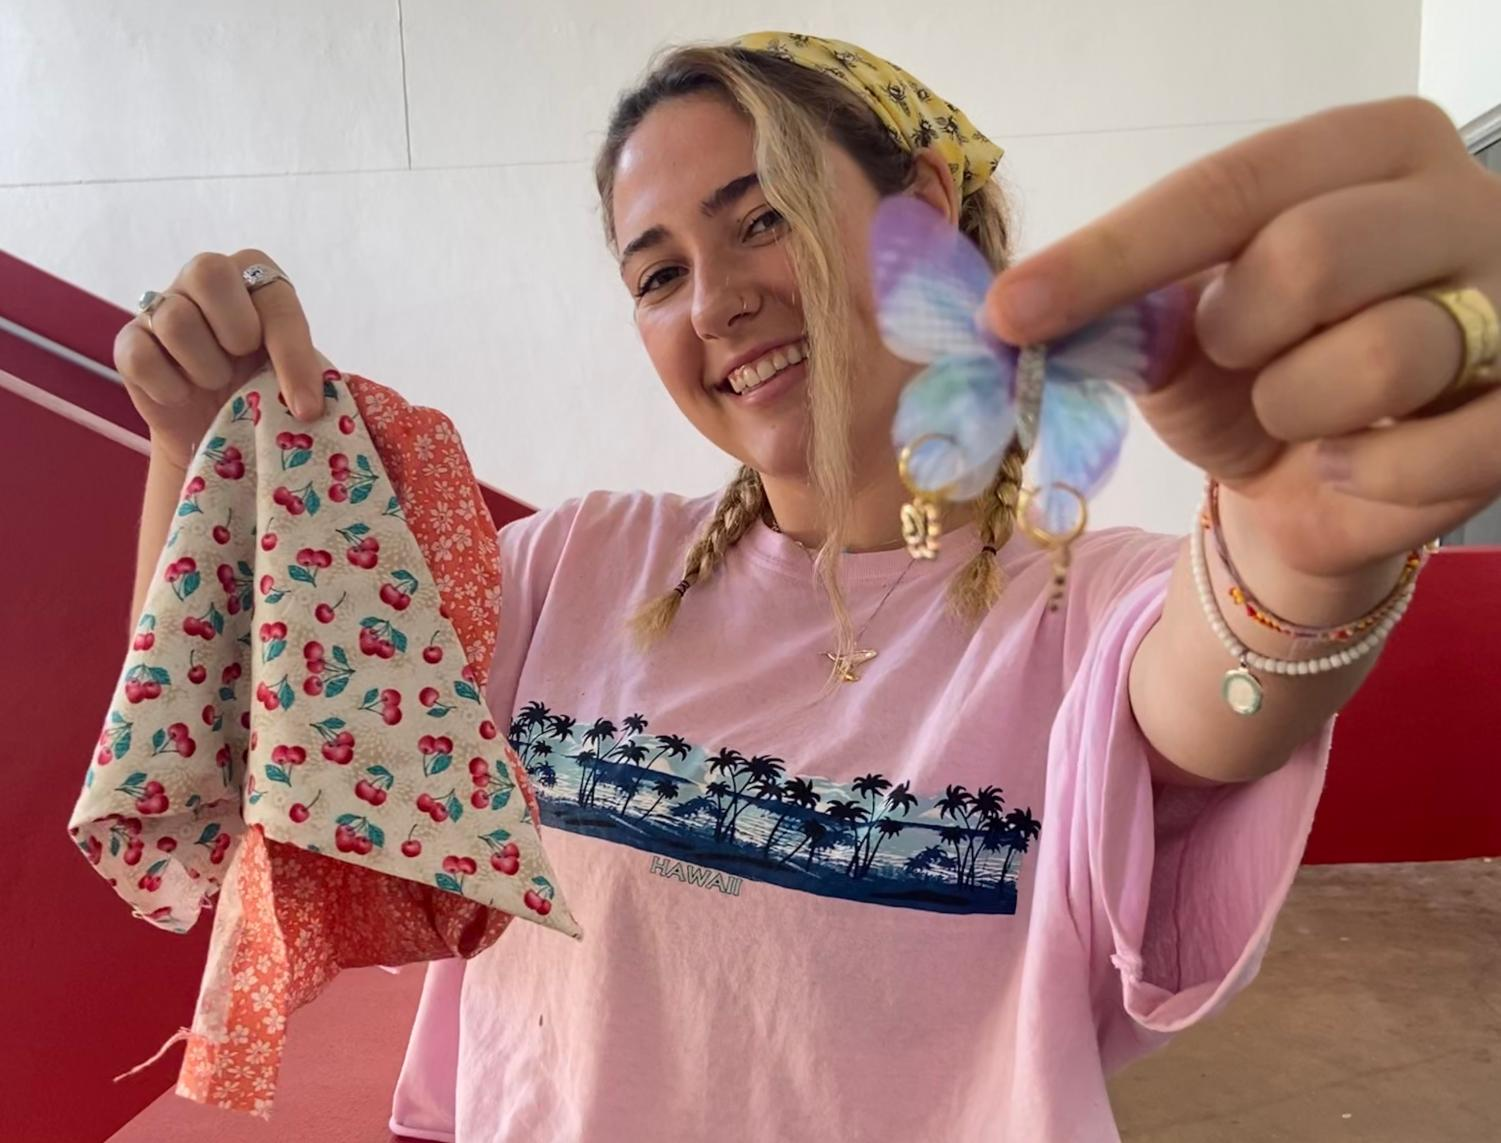 Senior Chloe Casaudoumecq has recently started a headscarf business, and it has been rippling success around the Cavalier community.